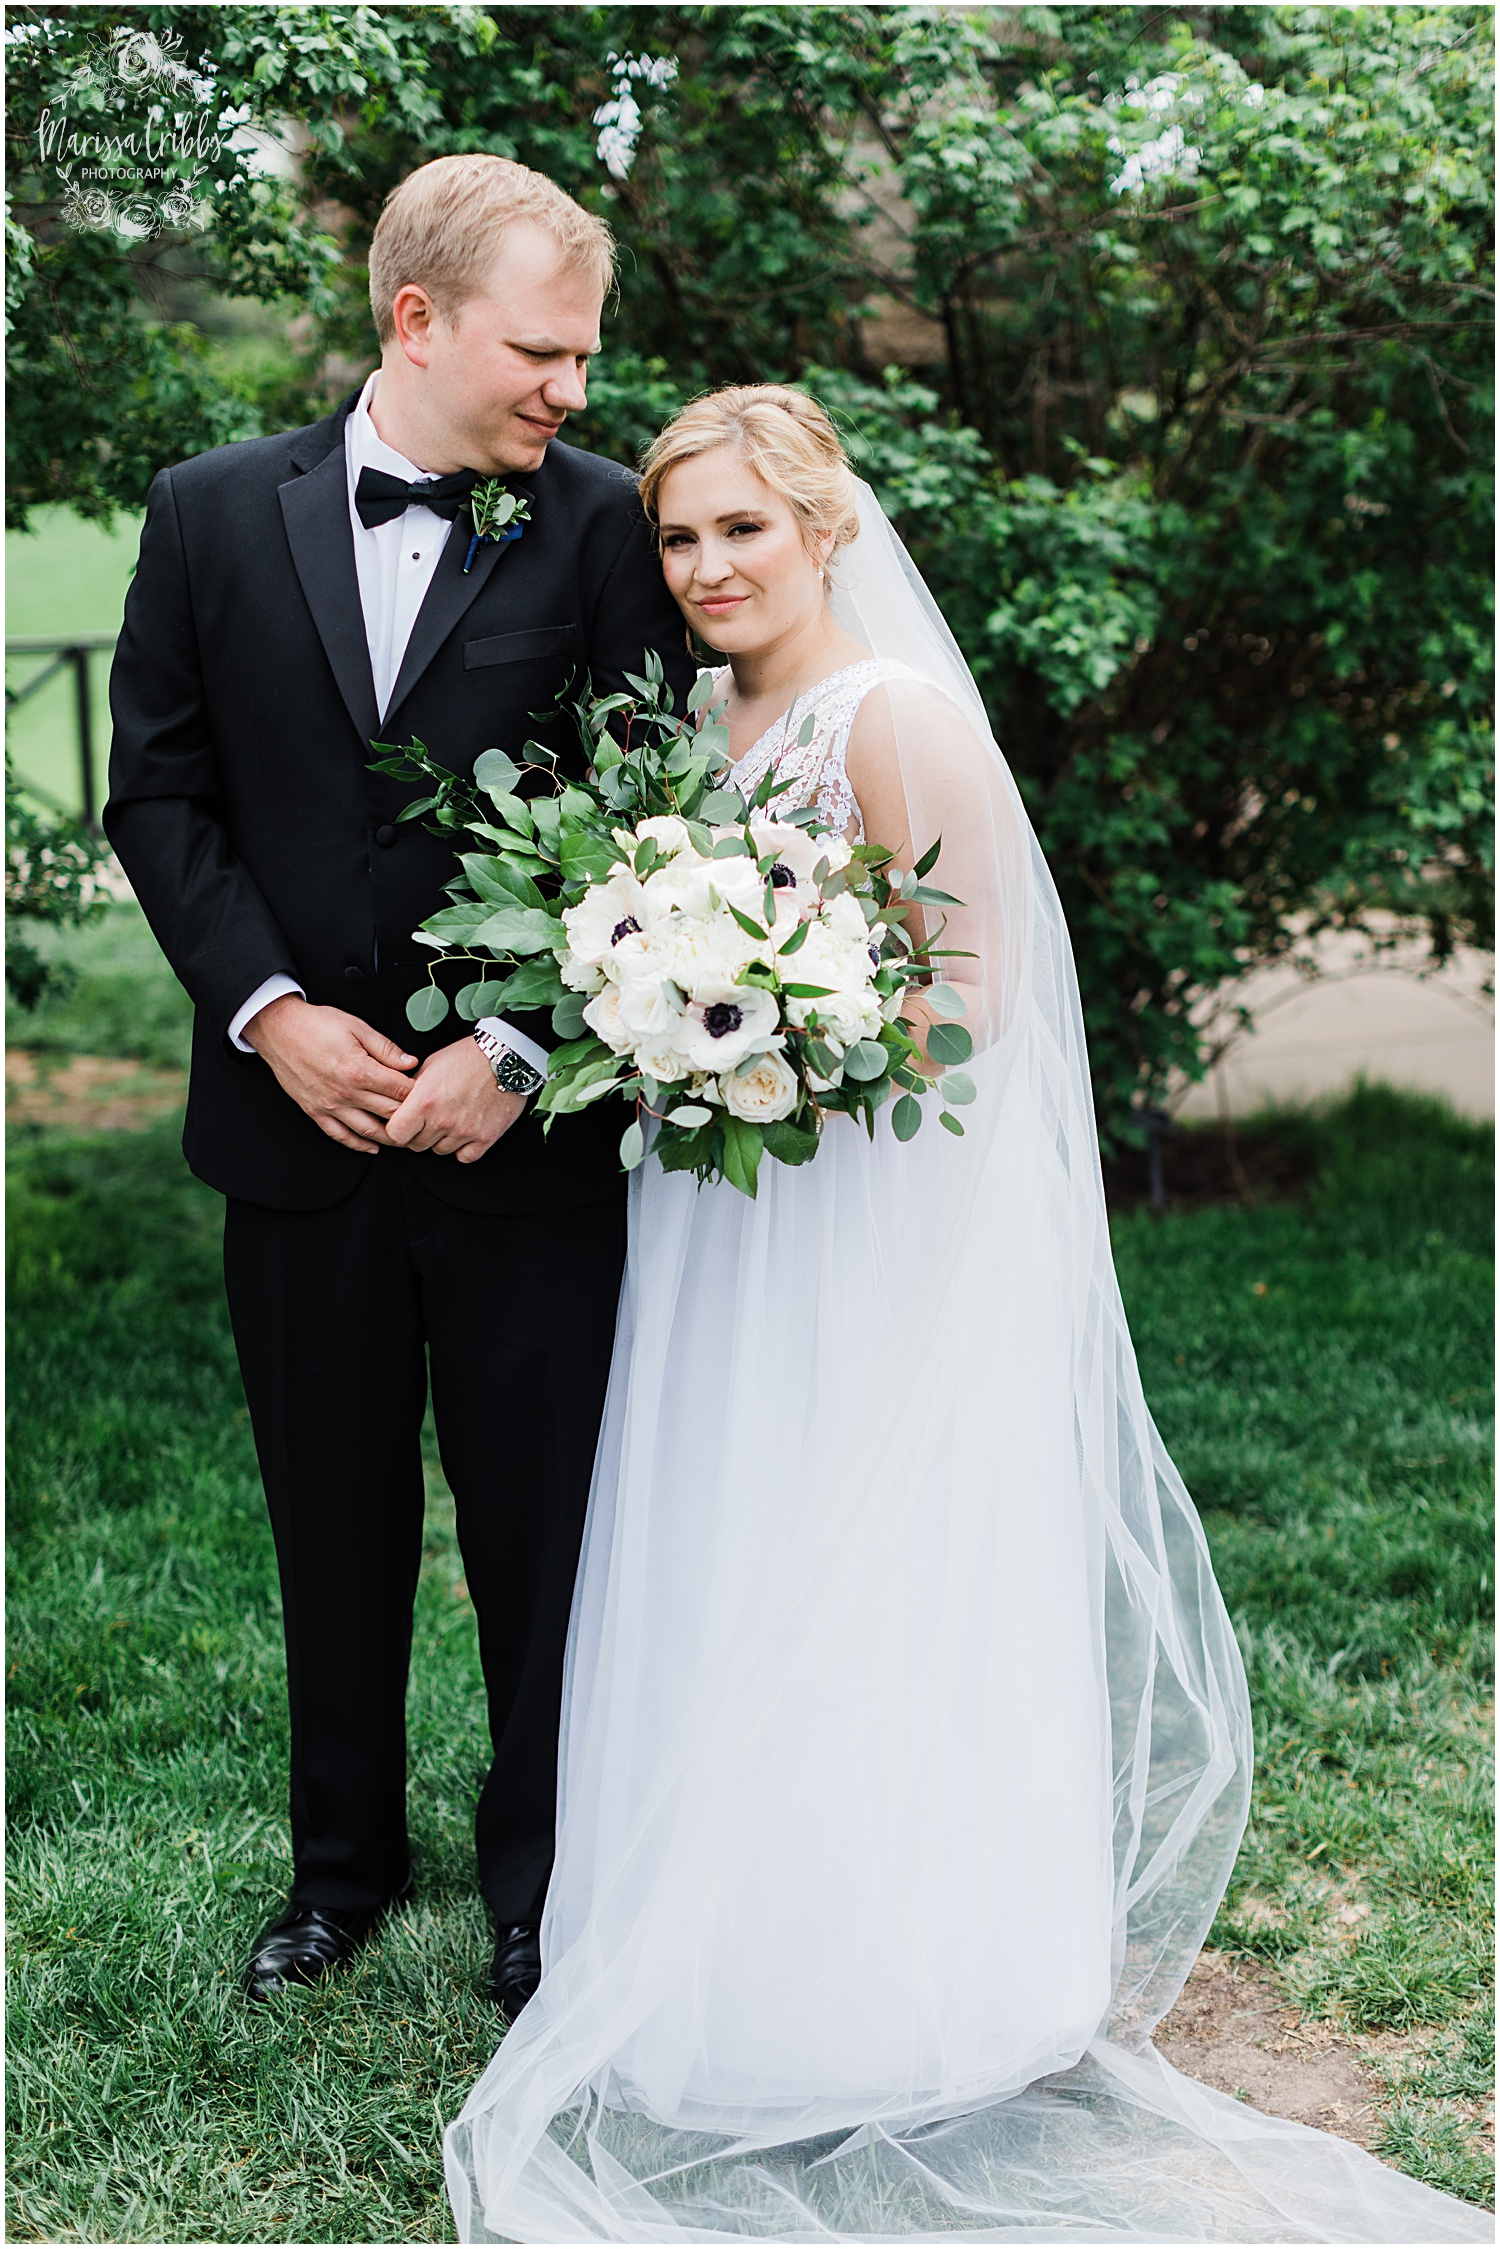 RACHEL & SCOTT MARRIED | MARISSA CRIBBS PHOTOGRAPHY_7695.jpg